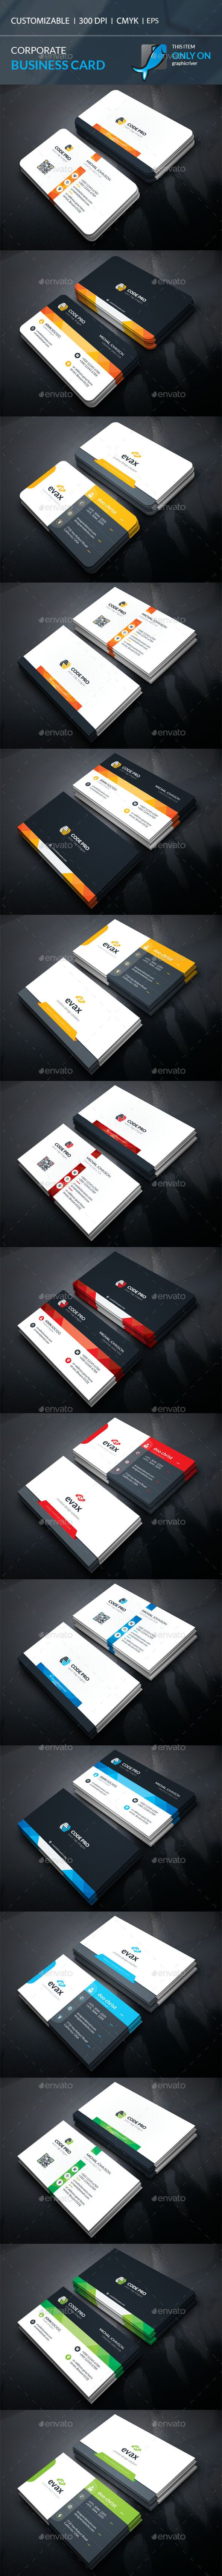 1109 best Business Card images on Pinterest | Name cards, Business ...